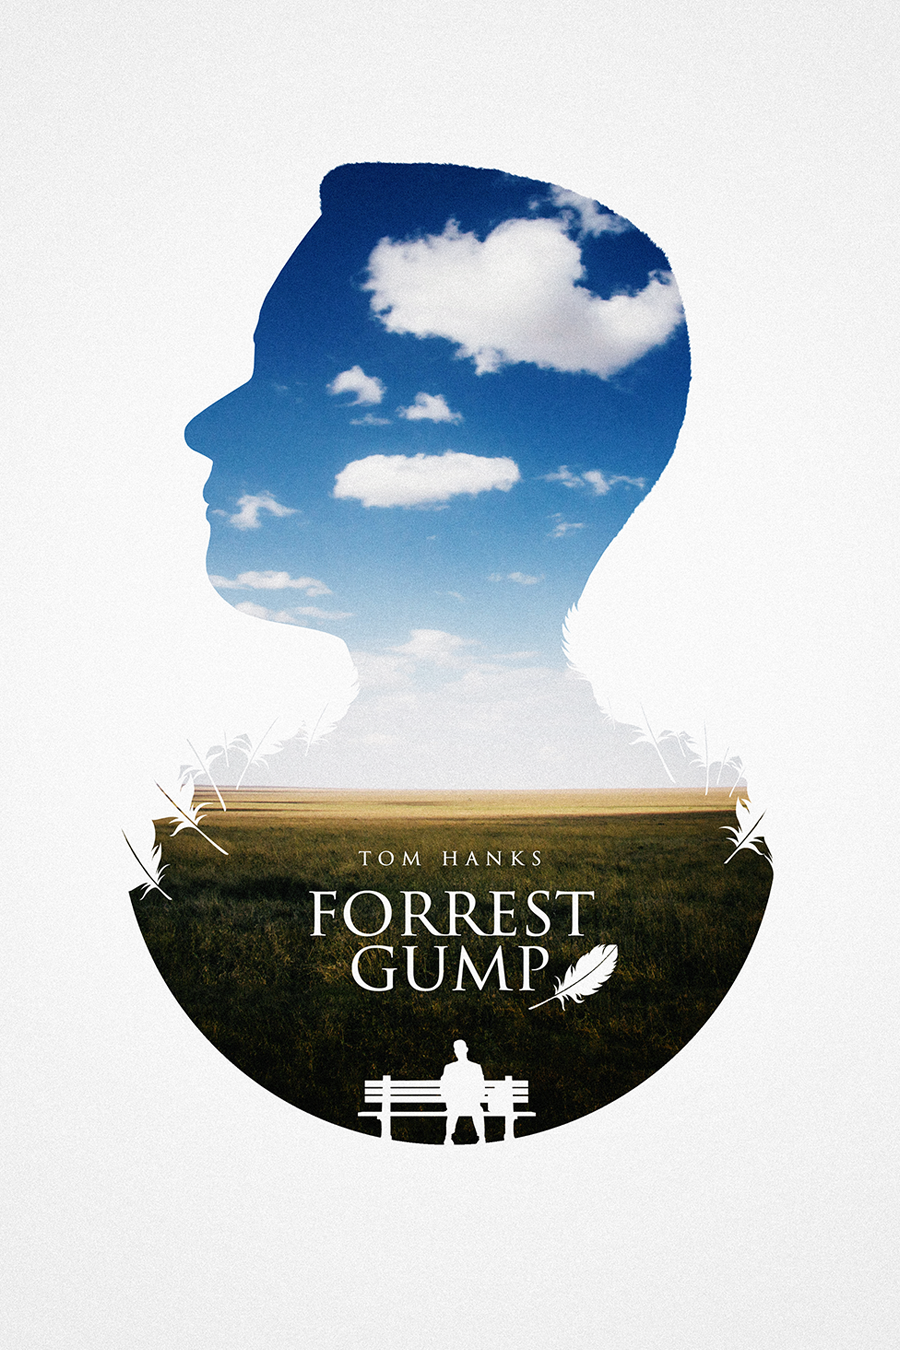 Forrest Gump Archives - Home of the Alternative Movie Poster -AMP-